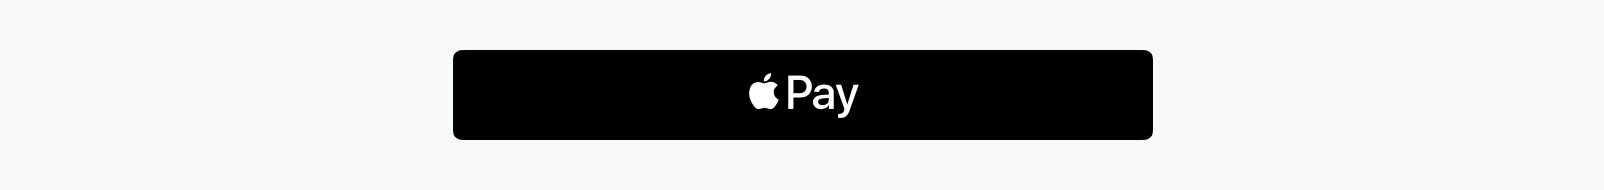 Apple_Pay_Button.png